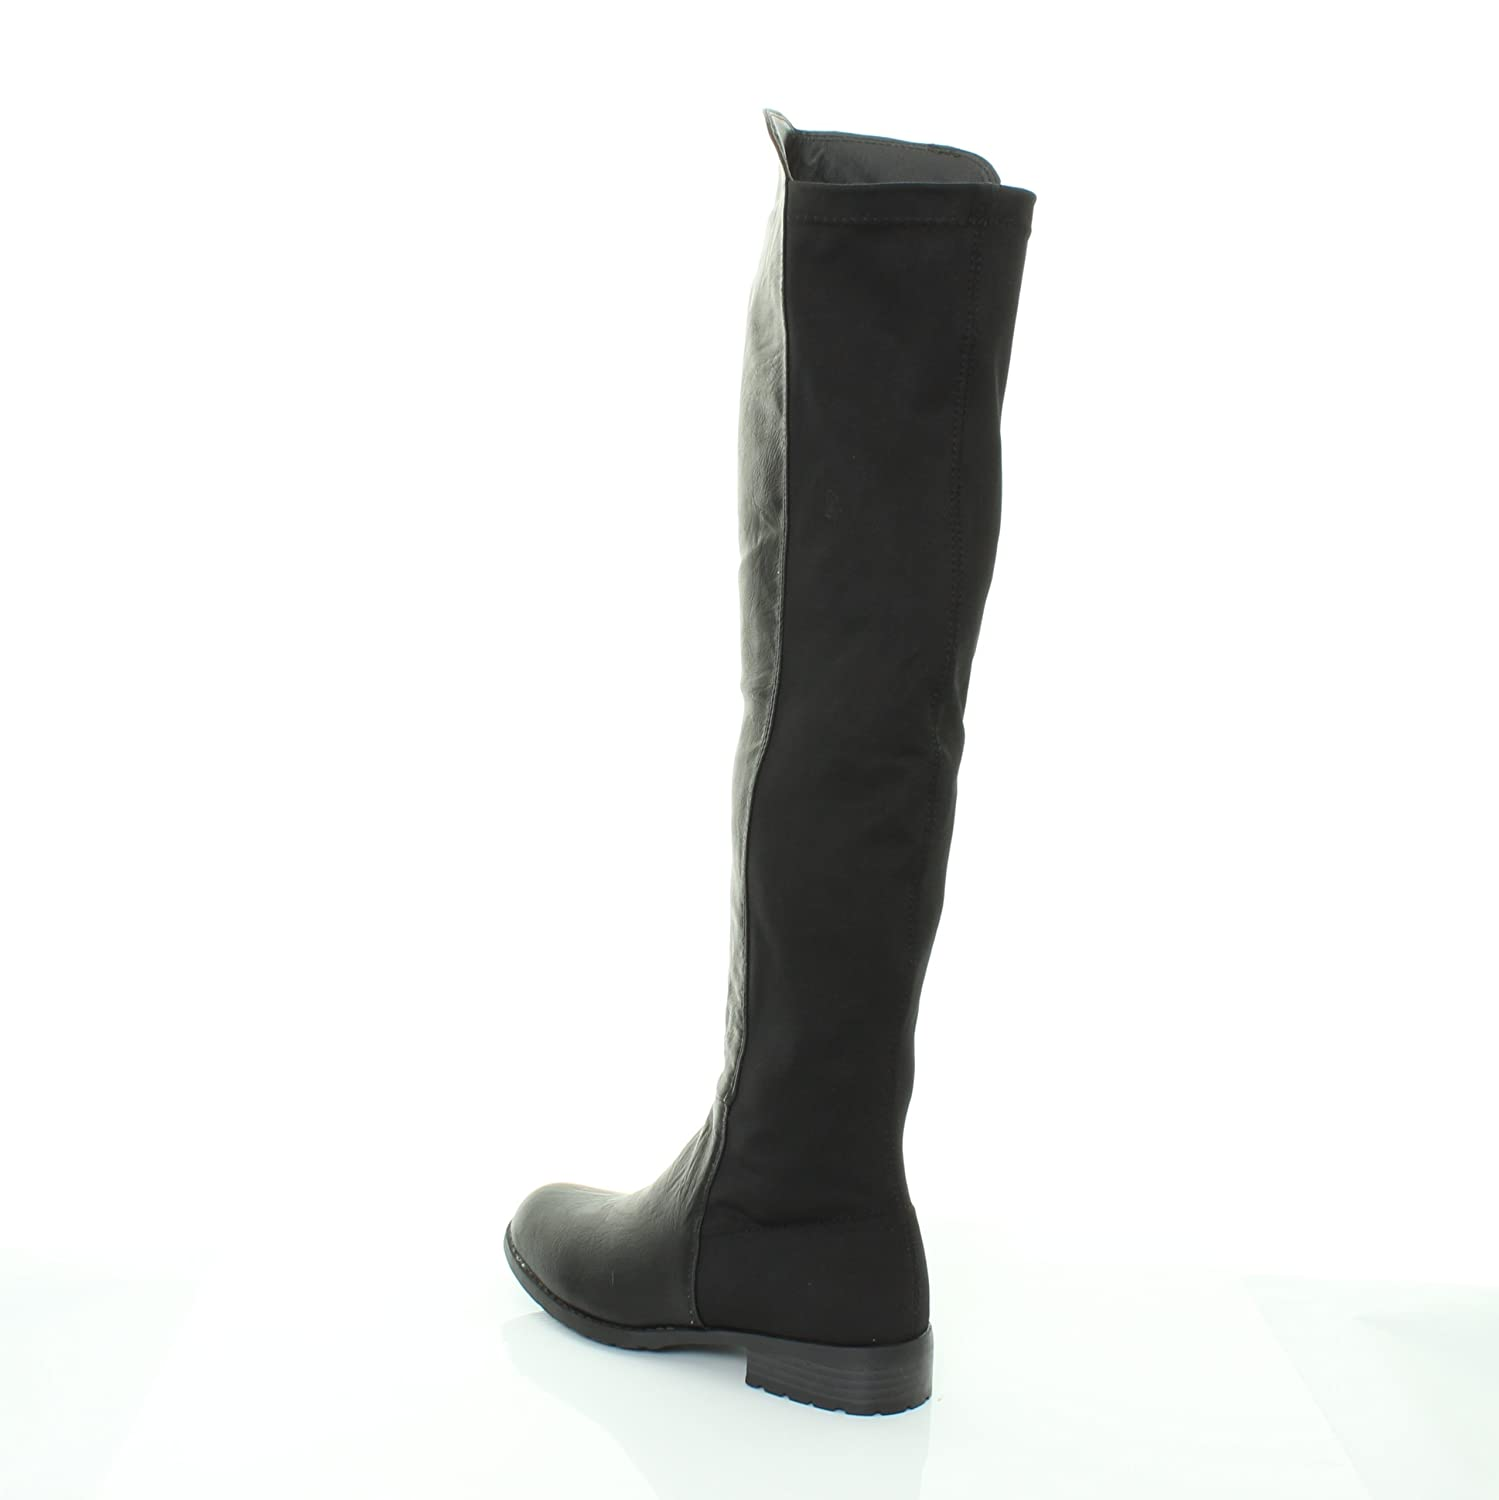 d4df8f7a59f30 NEW HT45 LADIES WOMENS WIDE LEG CALF STRETCH OVER KNEE THIGH HIGH FLAT  BOOTS SHOES SIZE 3 4 5 6 7 8 (UK 9